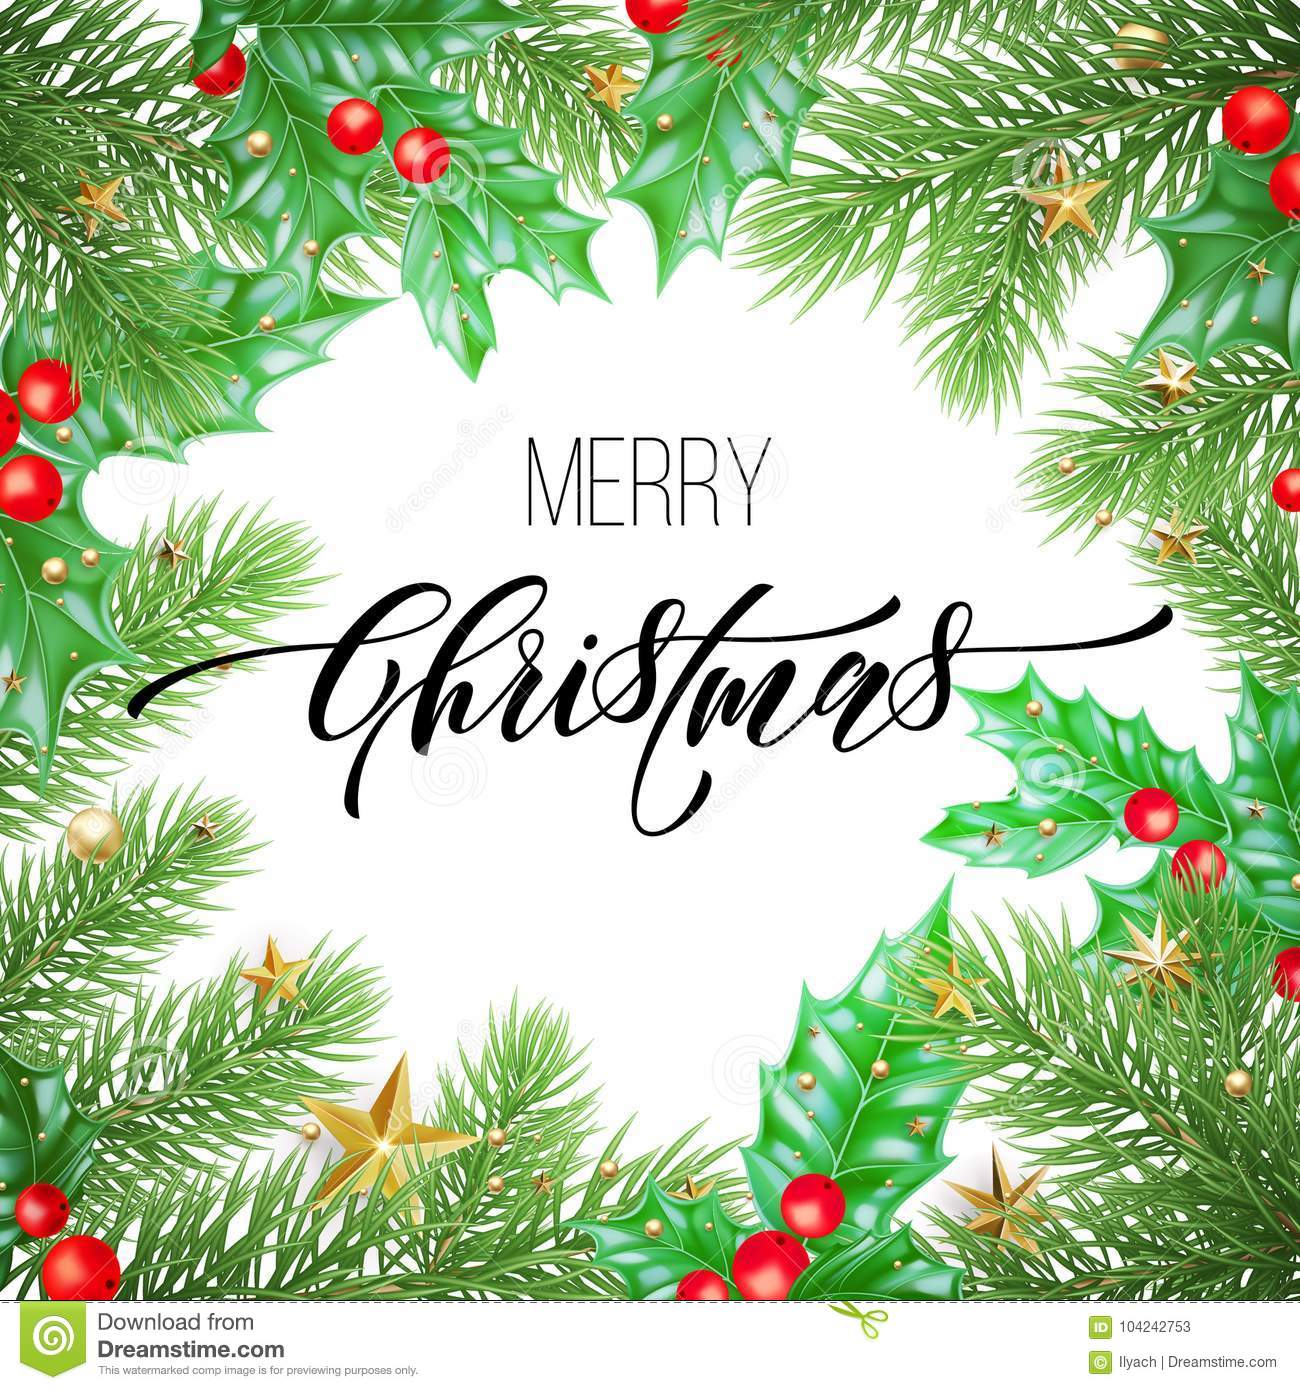 Merry christmas holiday hand drawn quote calligraphy greeting card merry christmas holiday hand drawn quote calligraphy greeting card background template vector christmas stars garland maxwellsz